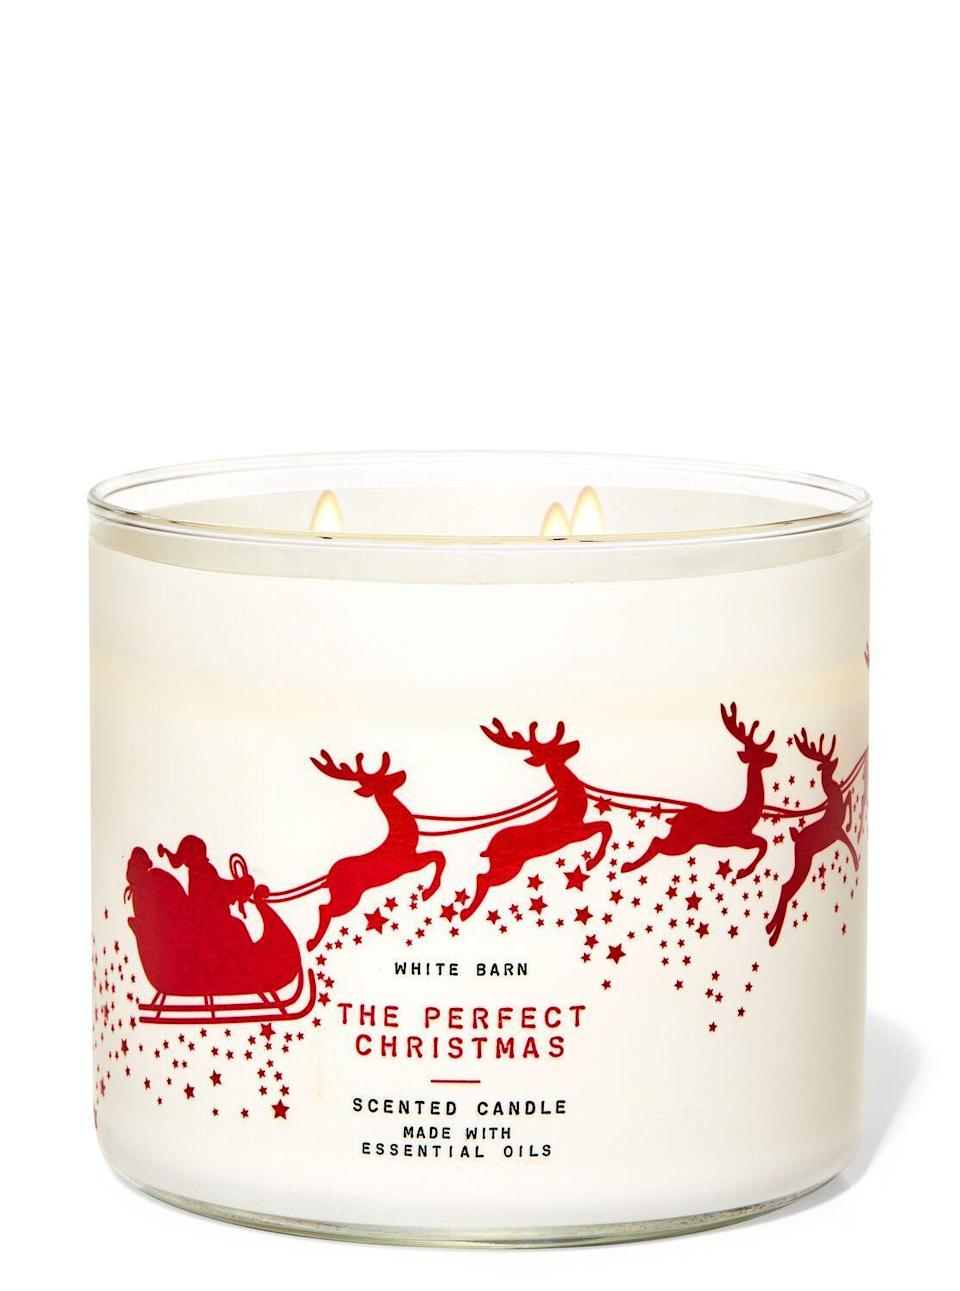 "<p><strong>Bath & Body Works</strong></p><p>bathandbodyworks.com</p><p><strong>$24.50</strong></p><p><a href=""https://www.bathandbodyworks.com/p/the-perfect-christmas-3-wick-candle-026178233.html"" rel=""nofollow noopener"" target=""_blank"" data-ylk=""slk:Shop Now"" class=""link rapid-noclick-resp"">Shop Now</a></p><p>Guys, it's the perfect Christmas! I'm not kidding! She has every smell of the holiday season! Go, go SPEND YOUR MONEY and have everything smell objectively wonderful. Even the Scroogiest of the Christmas Scrooges will literally melt. I can't wait to finish it so I can buy it again and again and again. </p><p>I tried out this candle after a particularly terrible day at work and I swear it was just like that scene where the Grinch's heart grew three sizes. </p>"